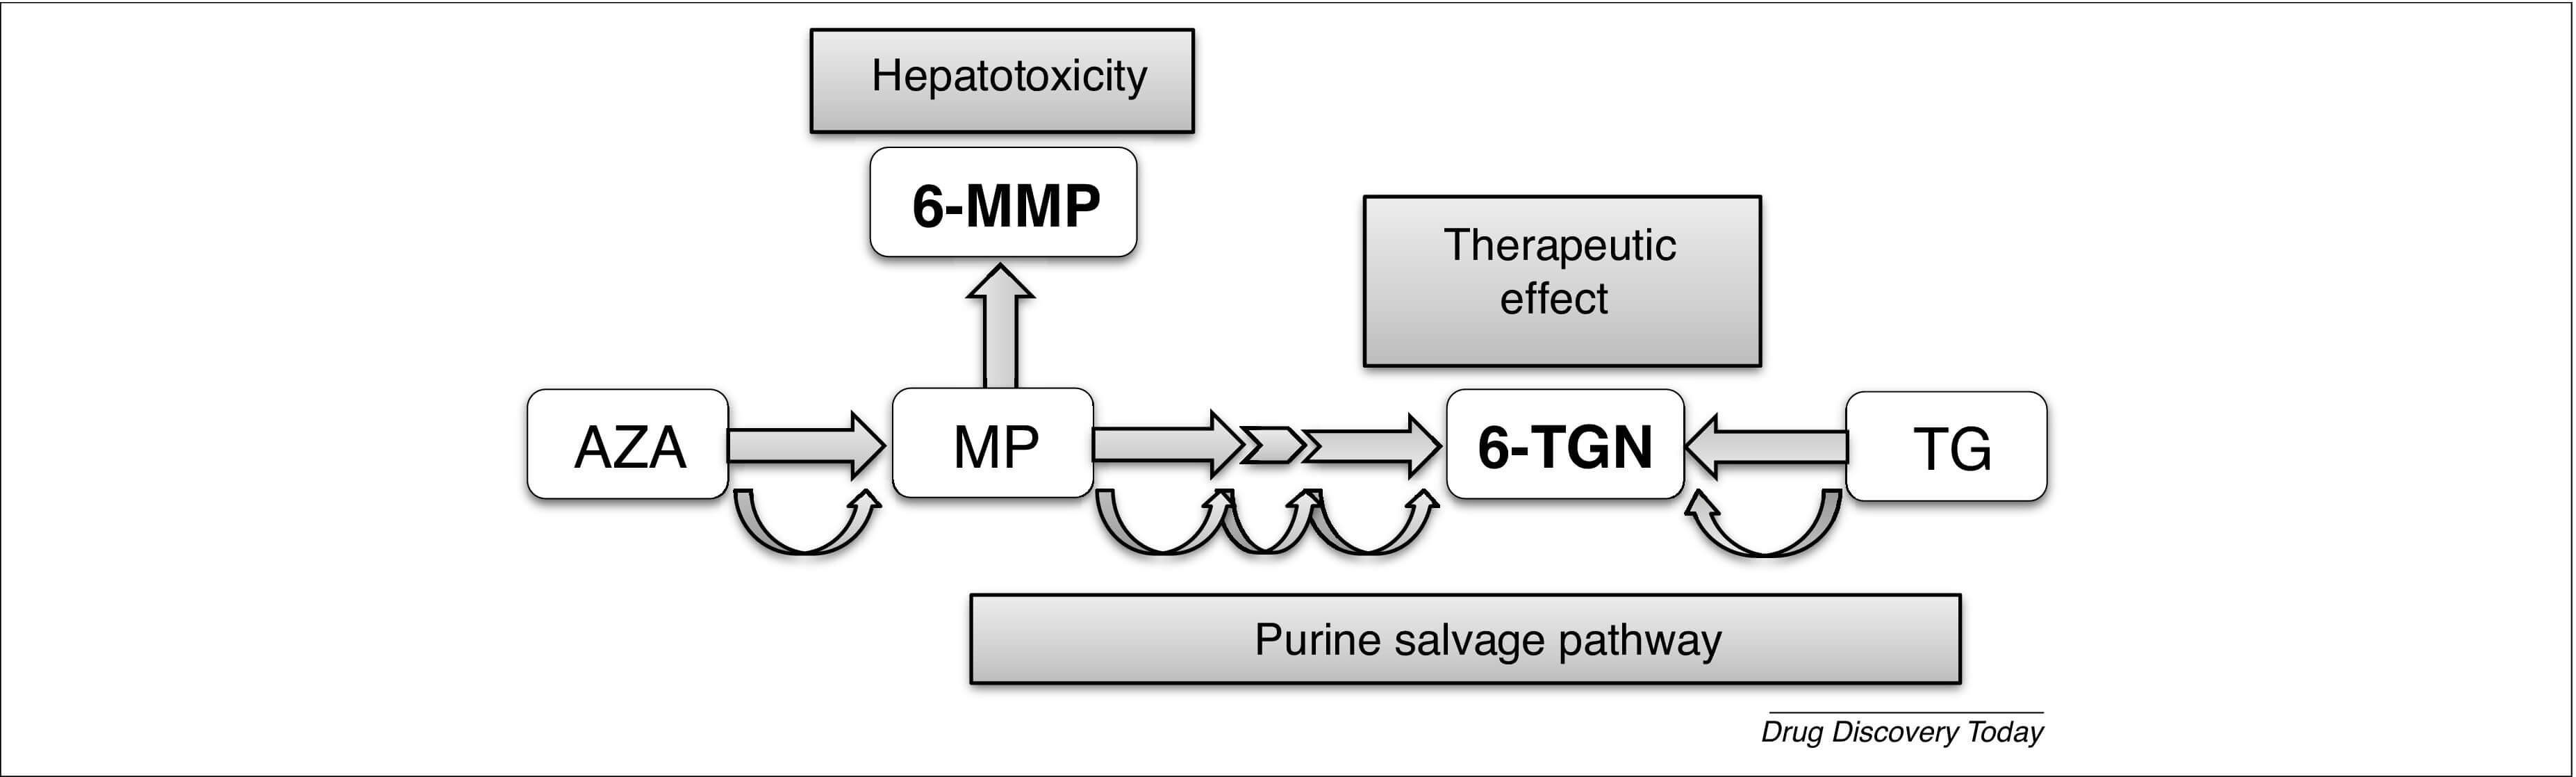 Figure 2. Simplified metabolic pathway of thiopurines.